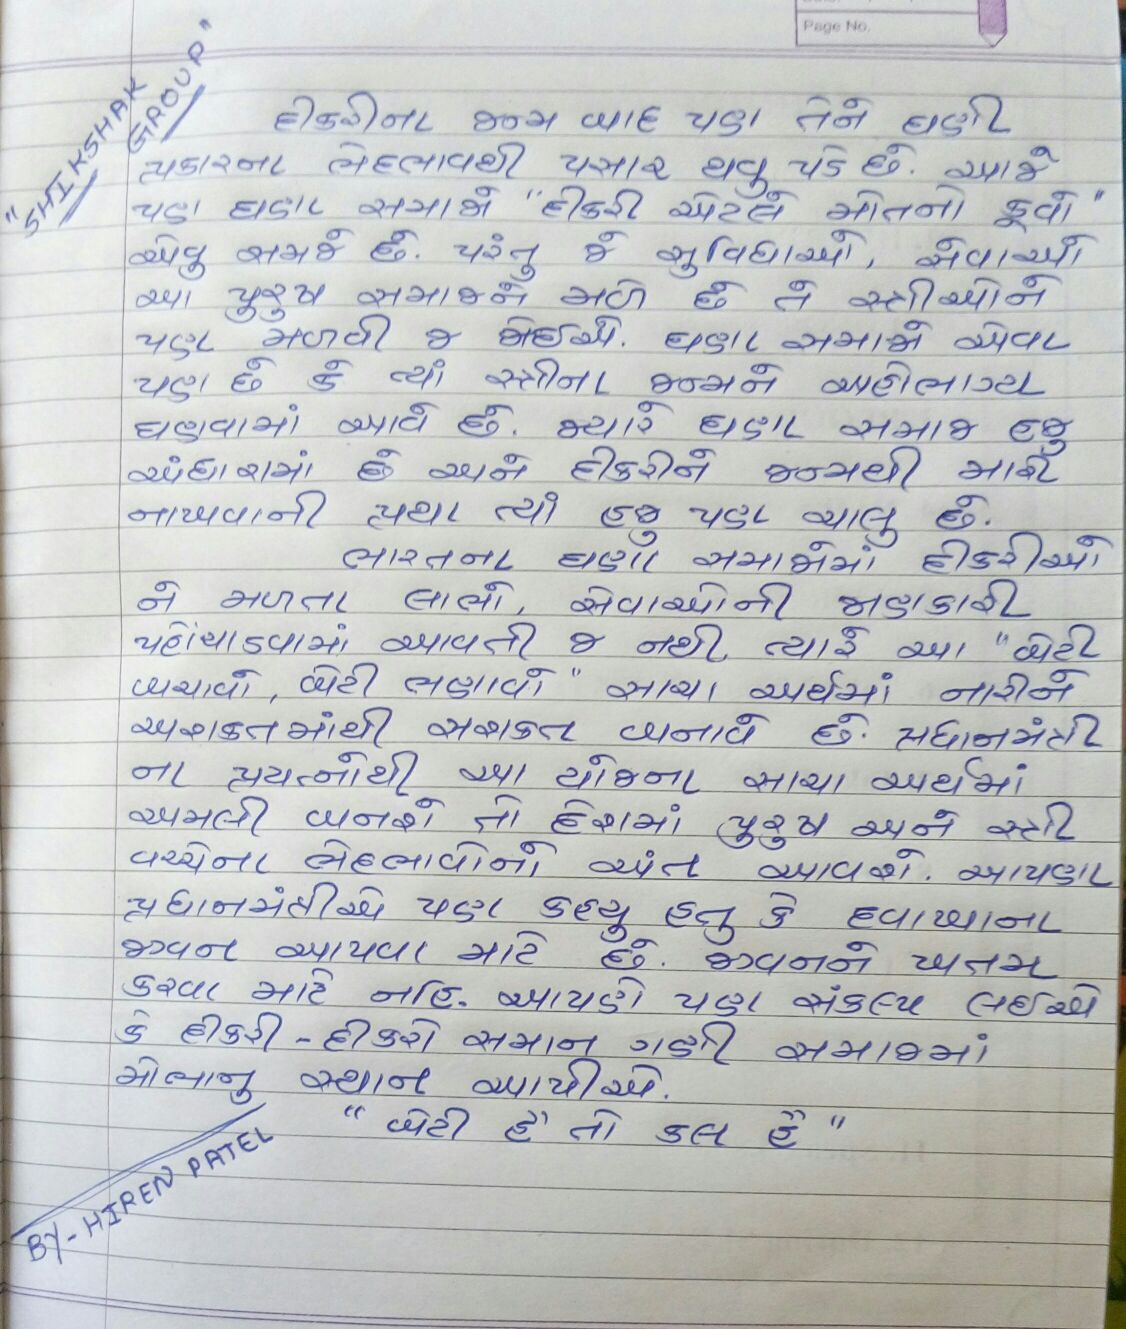 tree essay in gujarati child labour causes and effects essay about global warming pleasant river garden club child labour causes and effects essay about global warming pleasant